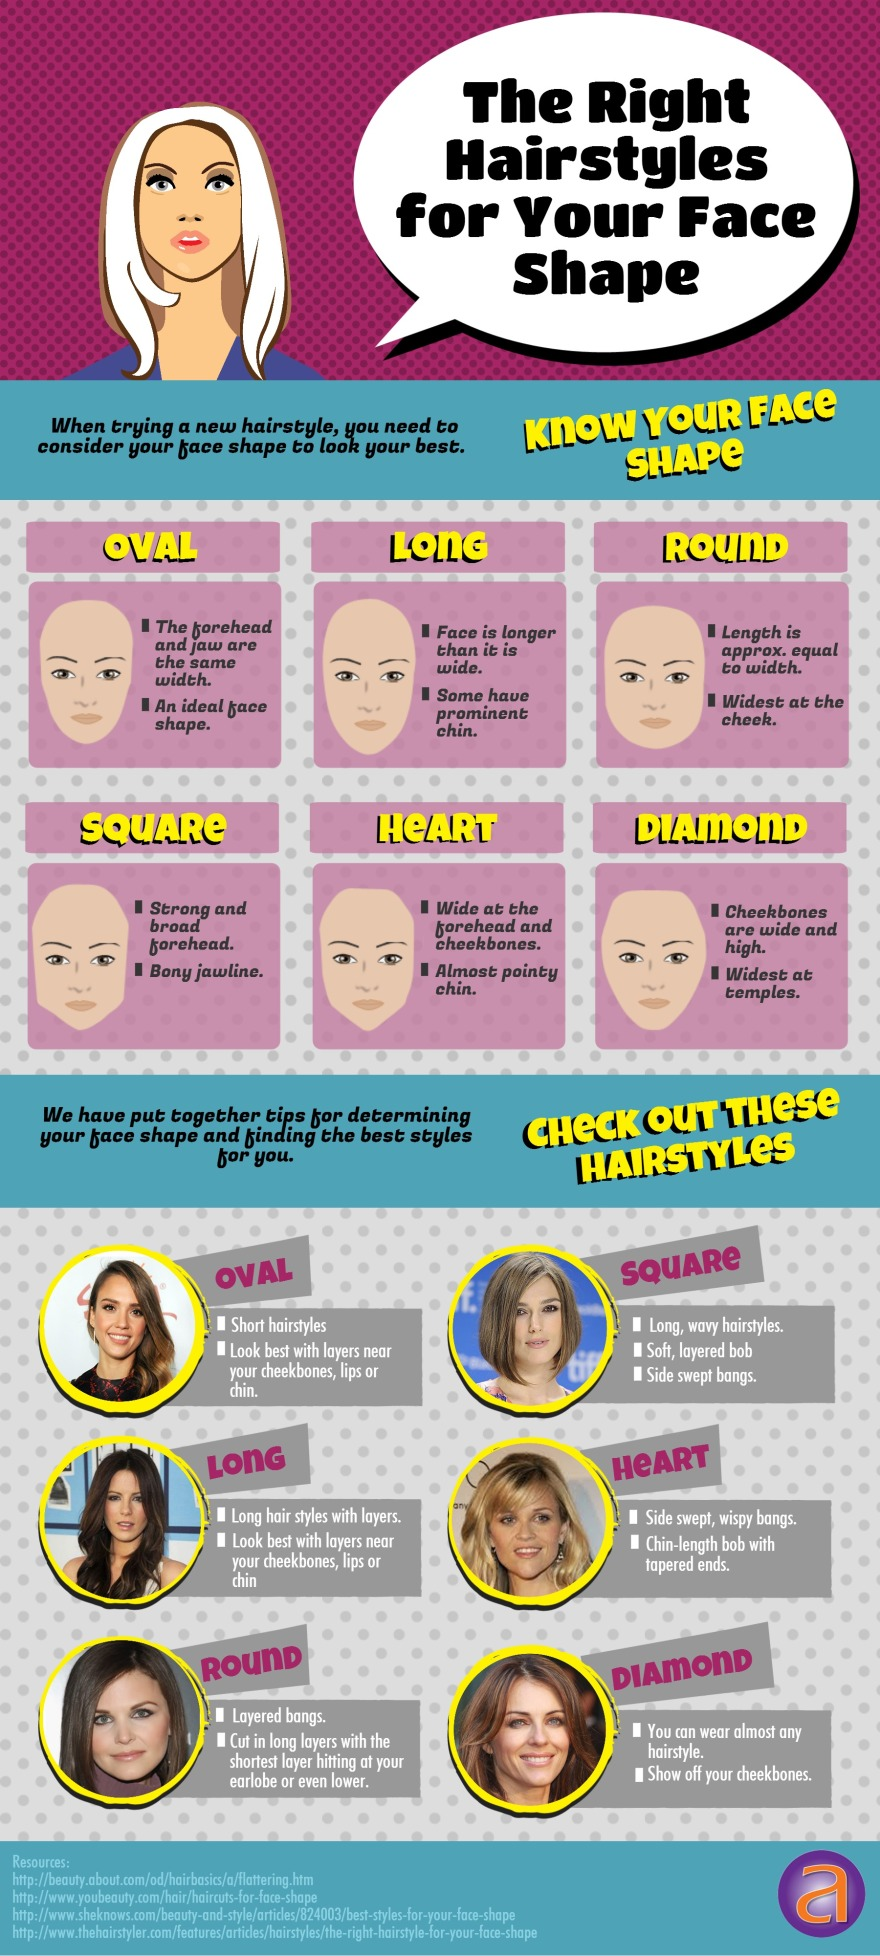 The_Right_Hairstyles_for_Your_Face_Shape